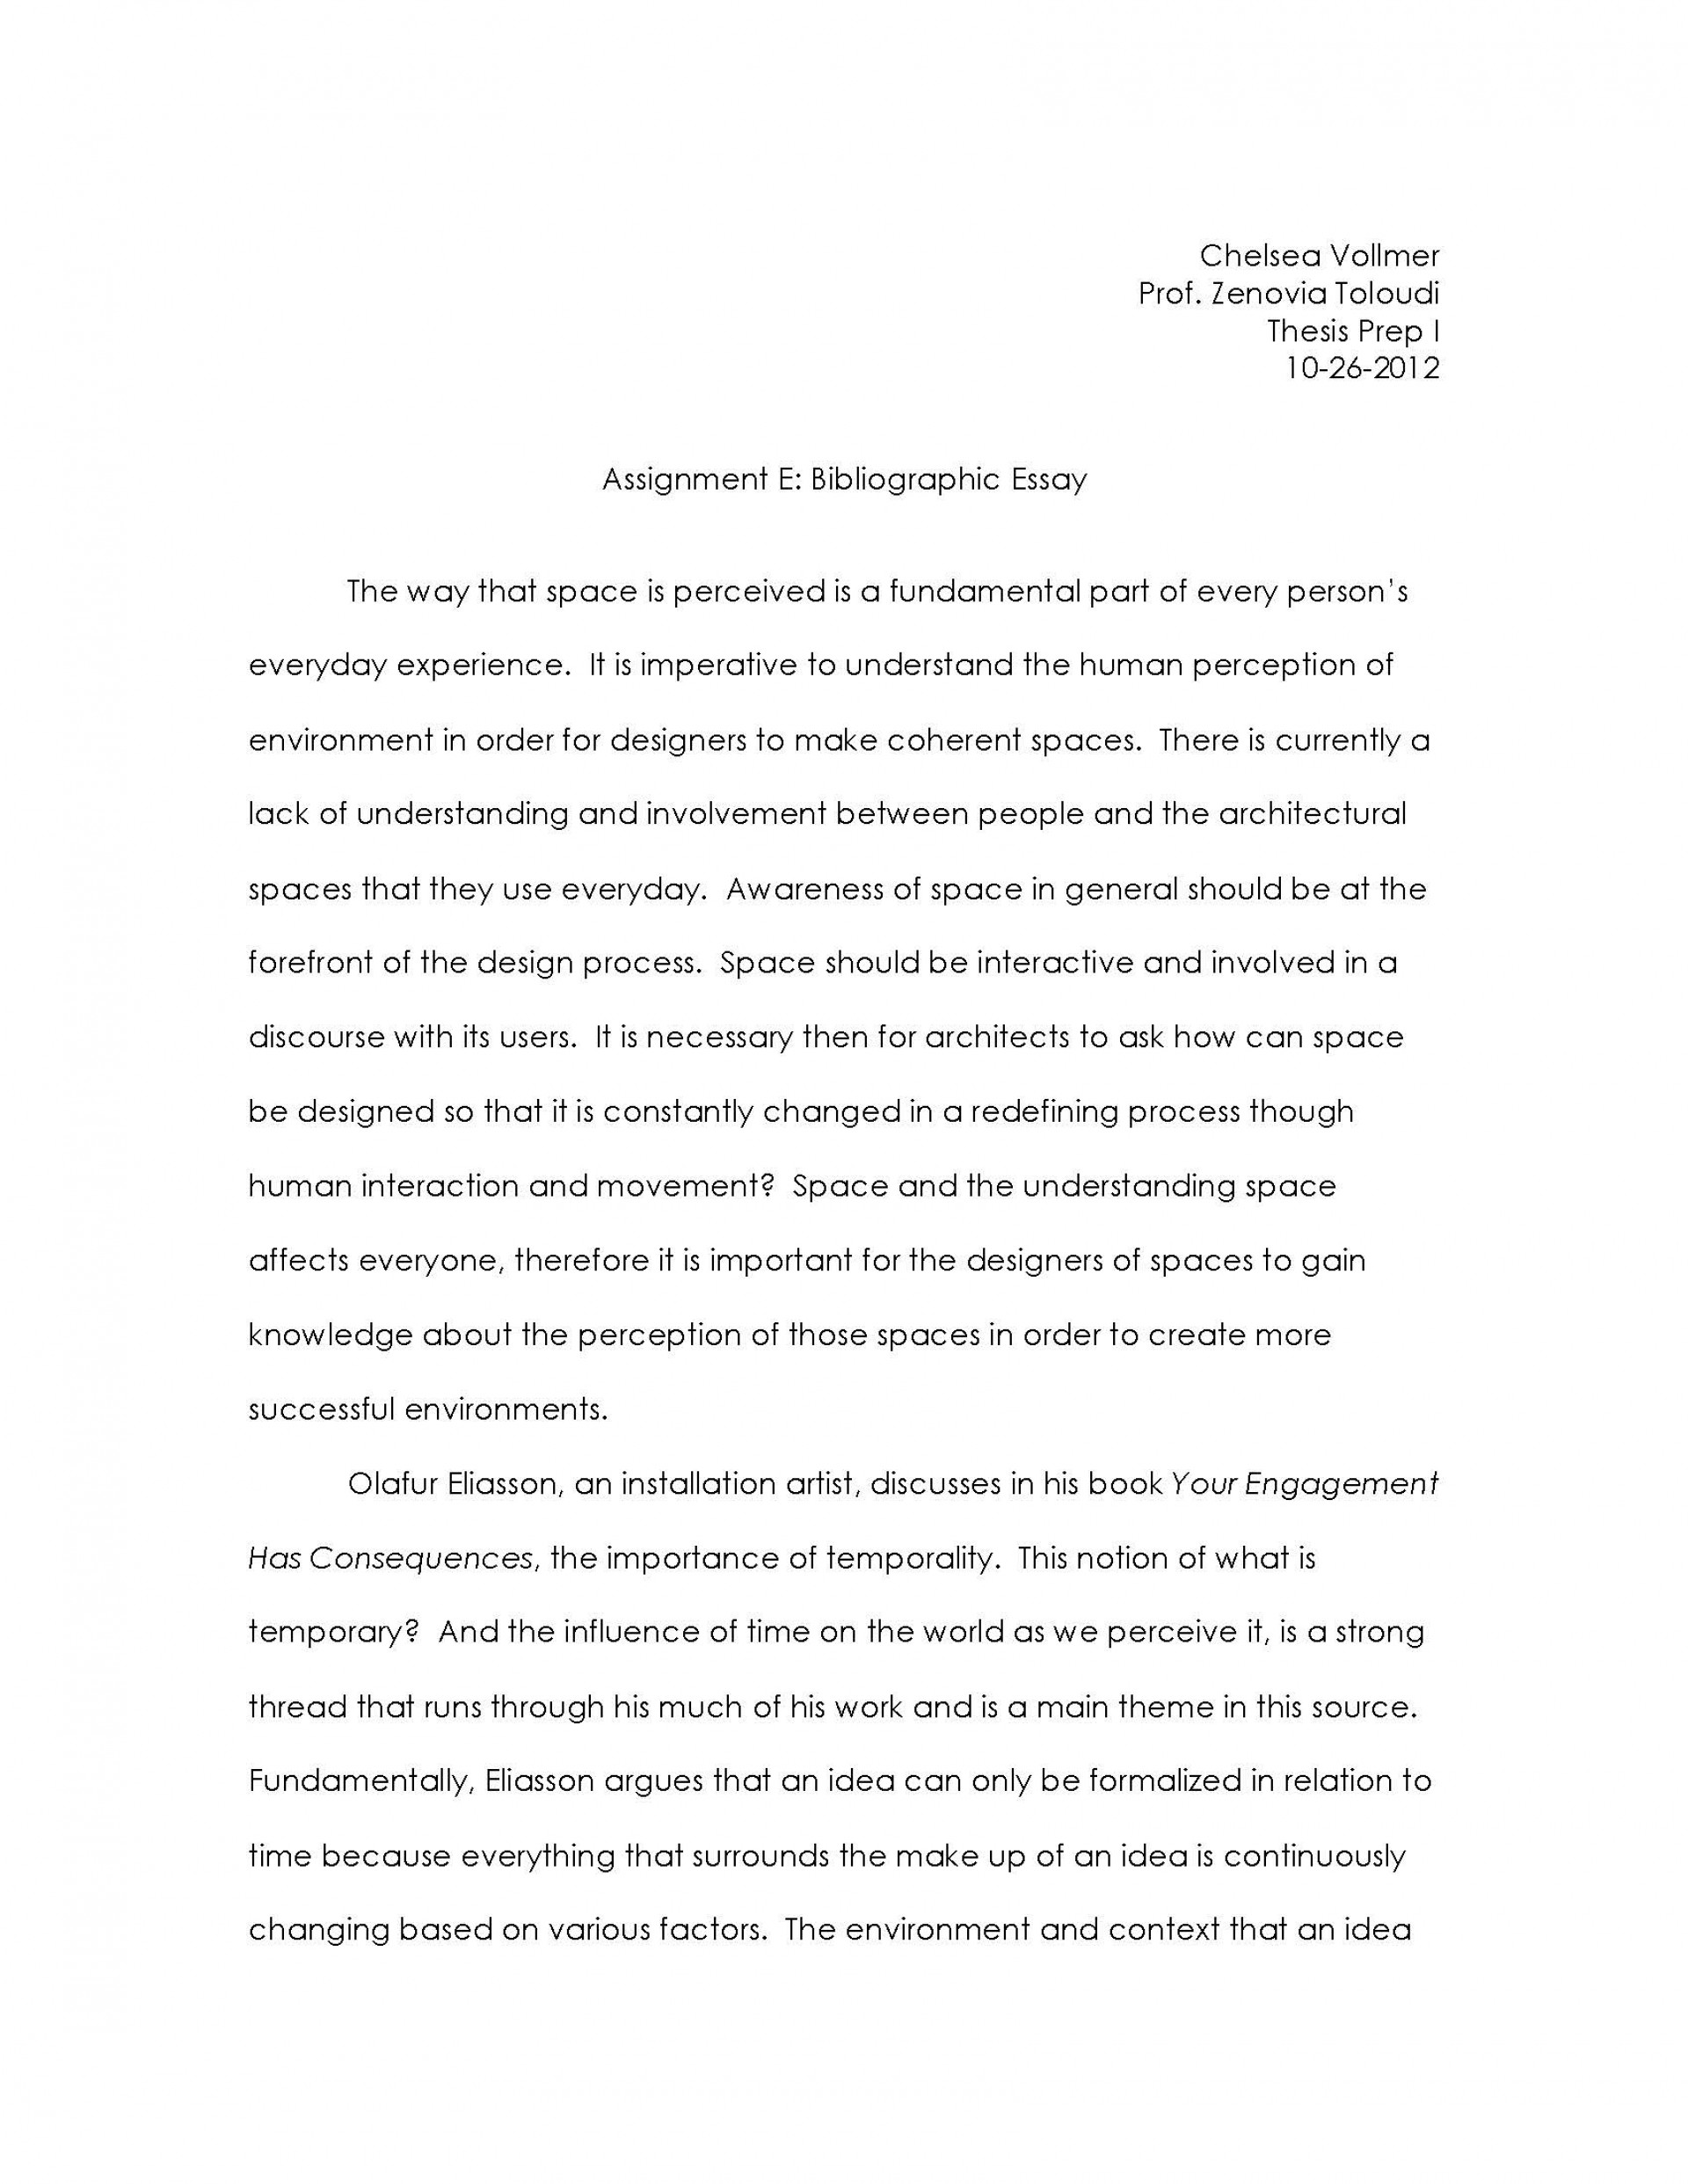 005 Satire Essays Assignment E Page 12 Excellent Essay Examples On Abortion Gun Control Obesity 1920